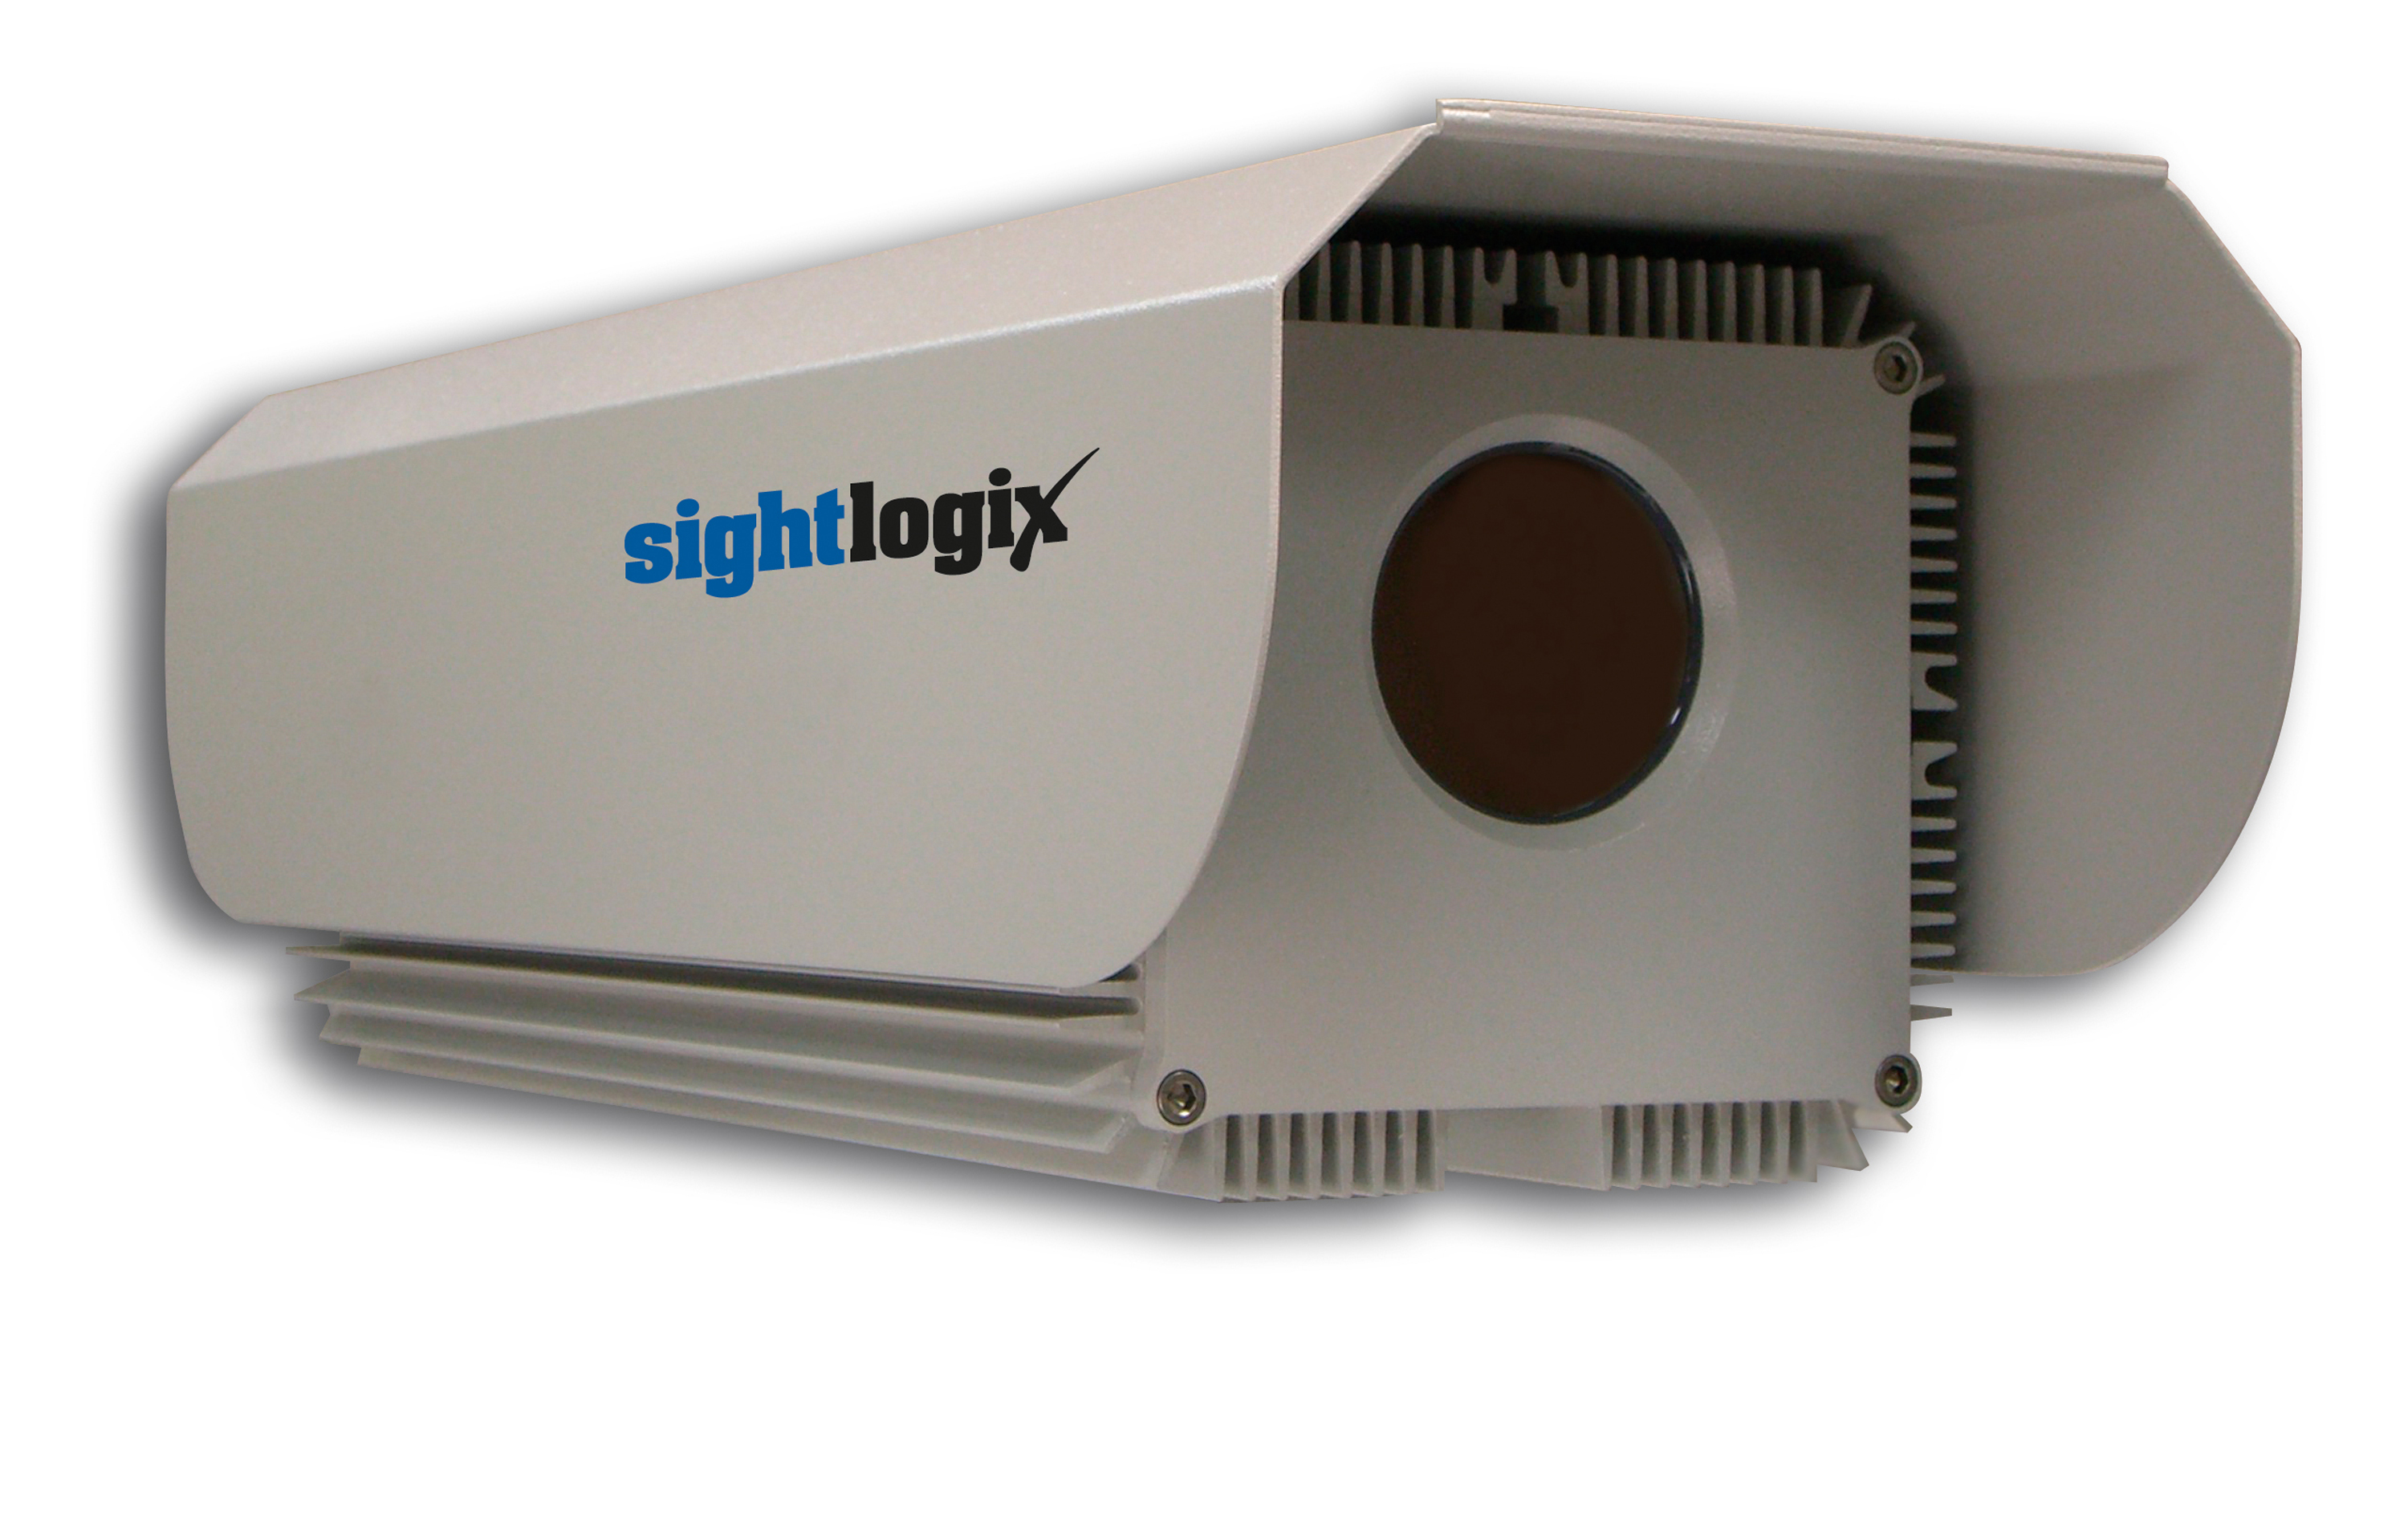 SightLogix SightSensor